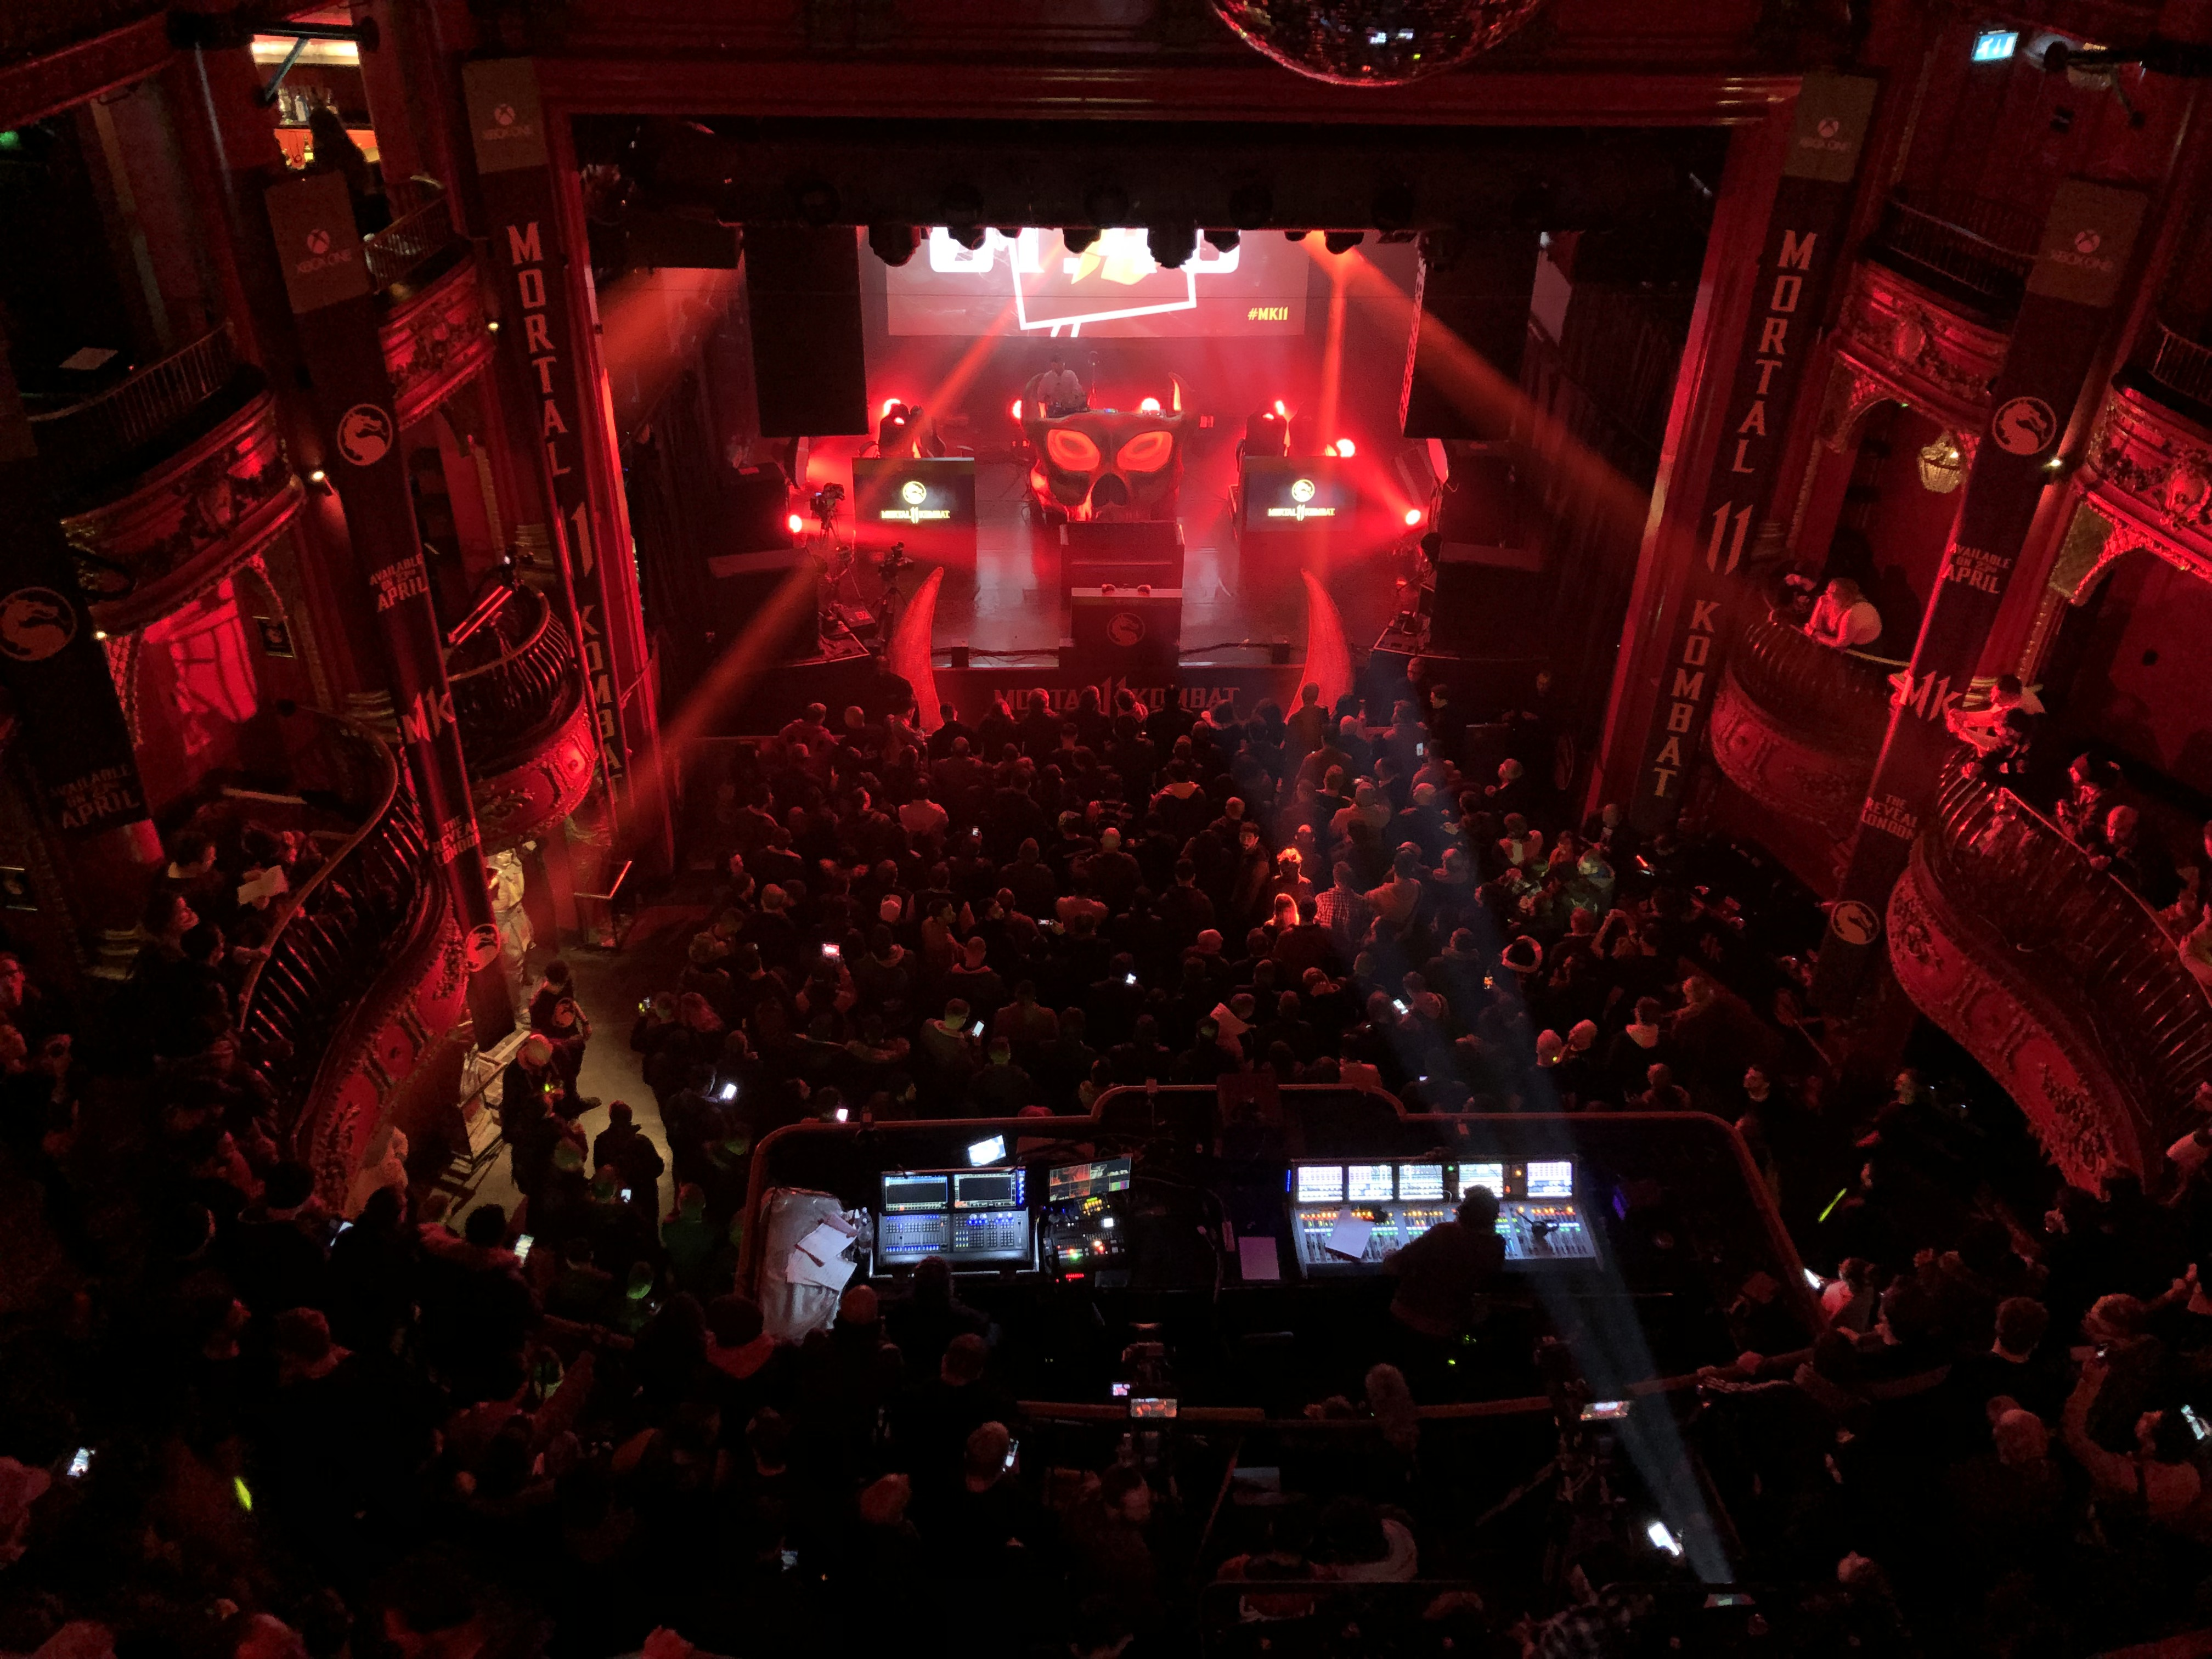 An internal shot of the KOKO in Camden